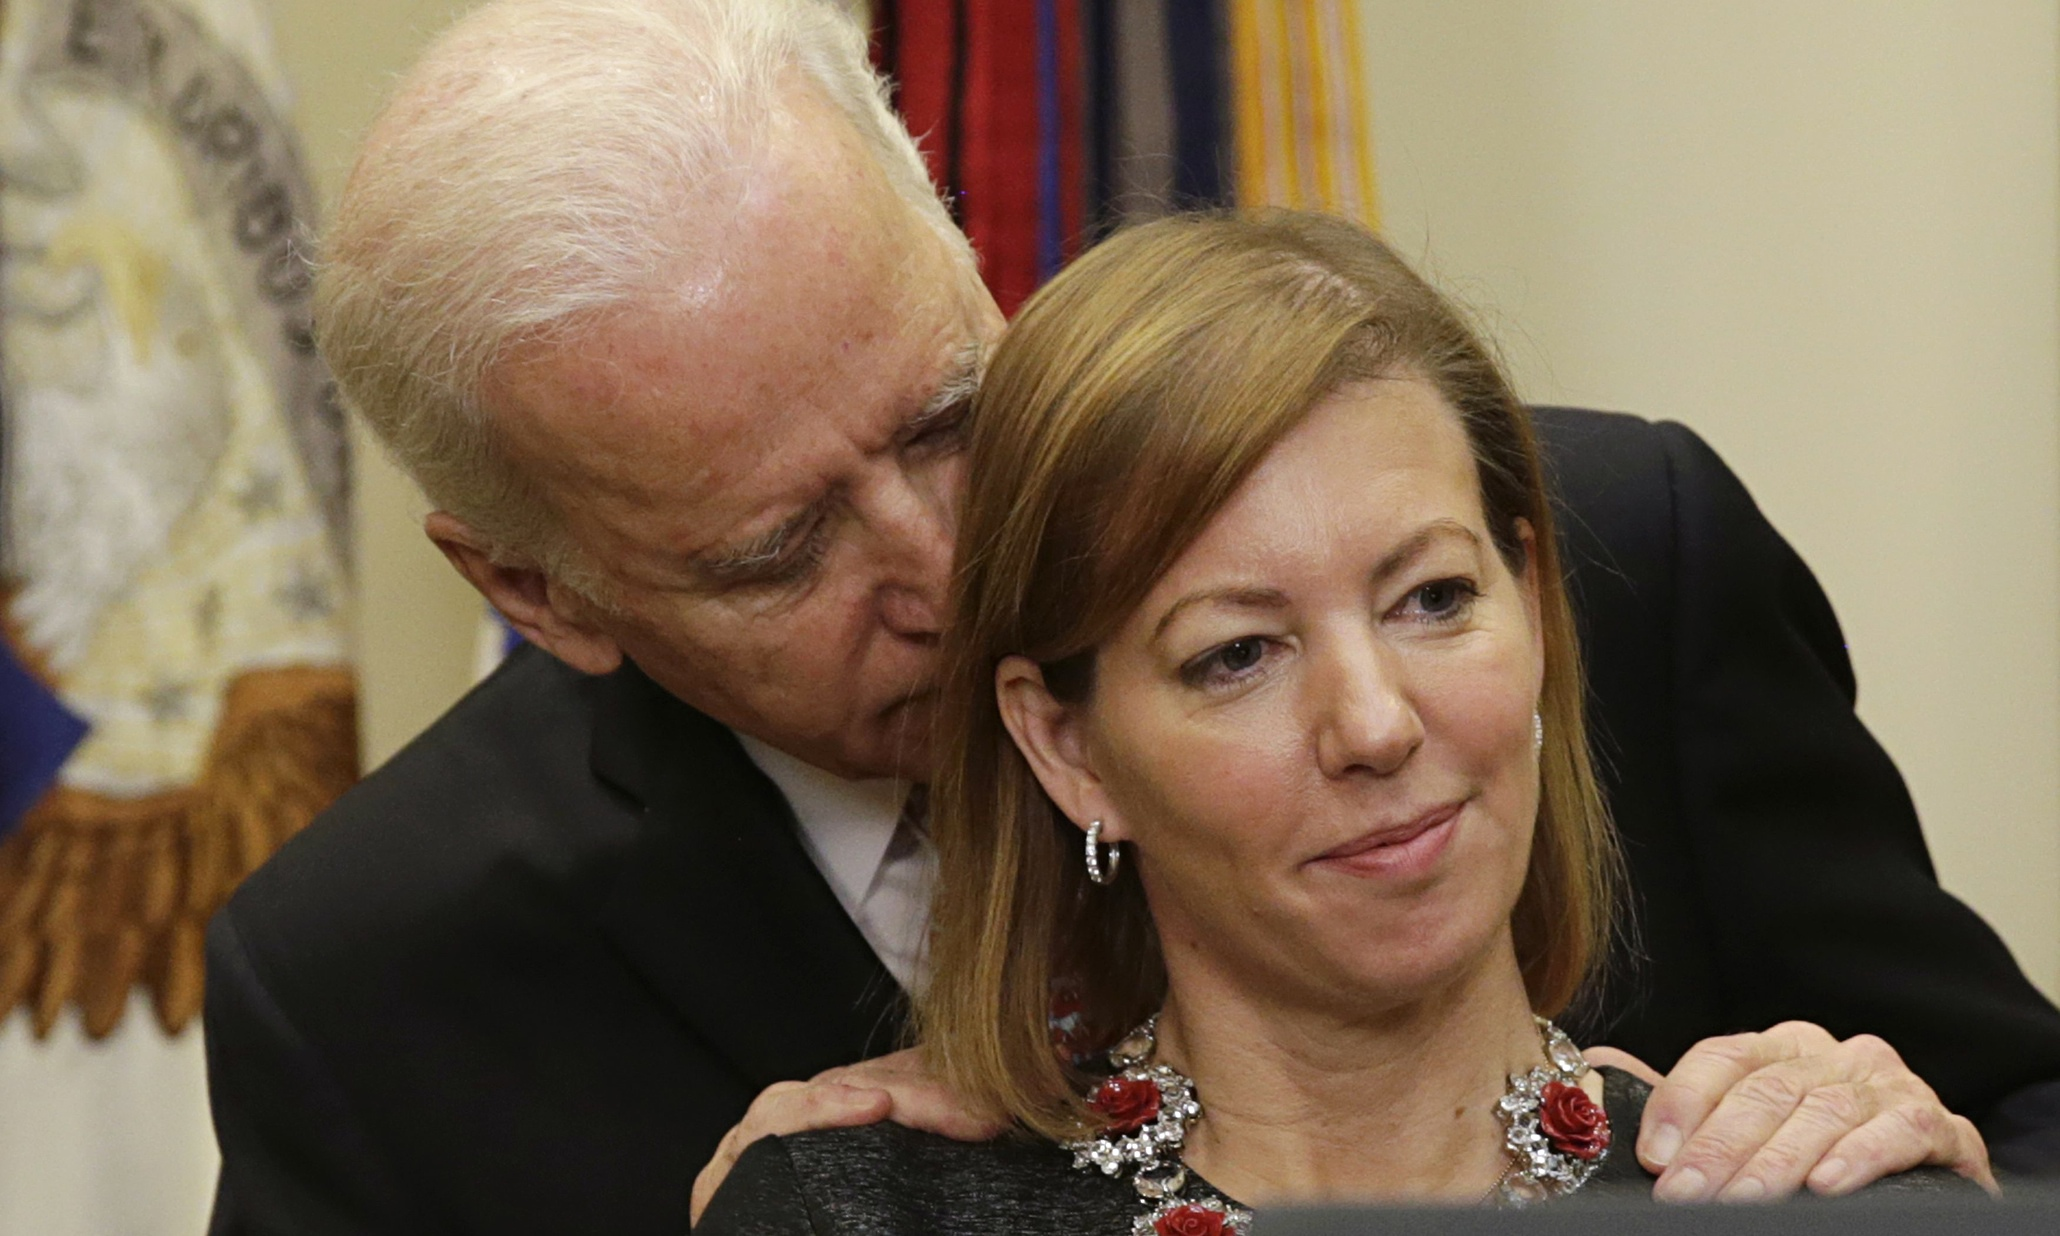 Joe Biden and why touchy-feely men should back off ...